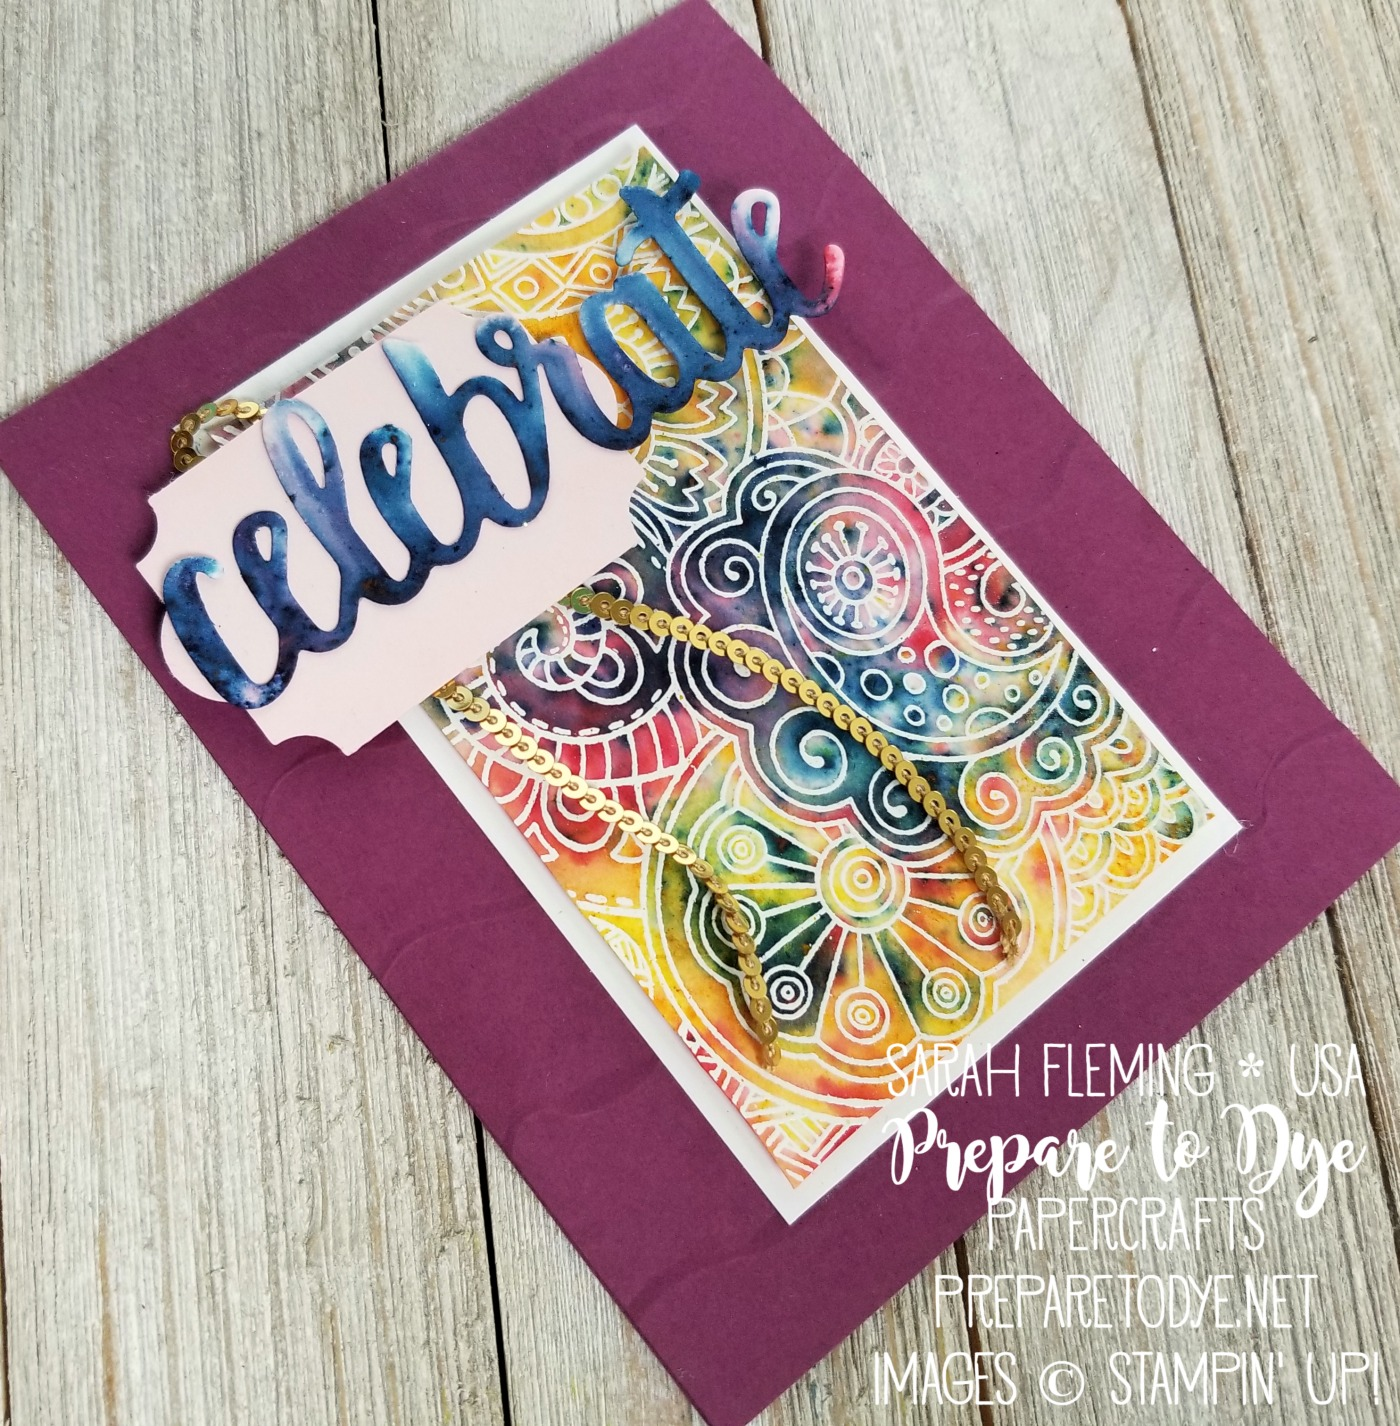 Stampin' Up! Celebrate You thinlits (free with $100 purchase during Sale-A-Bration), Hello Color, Brusho Crystal Colour, emboss resist handmade celebration card - Sarah Fleming - Prepare to Dye Papercrafts